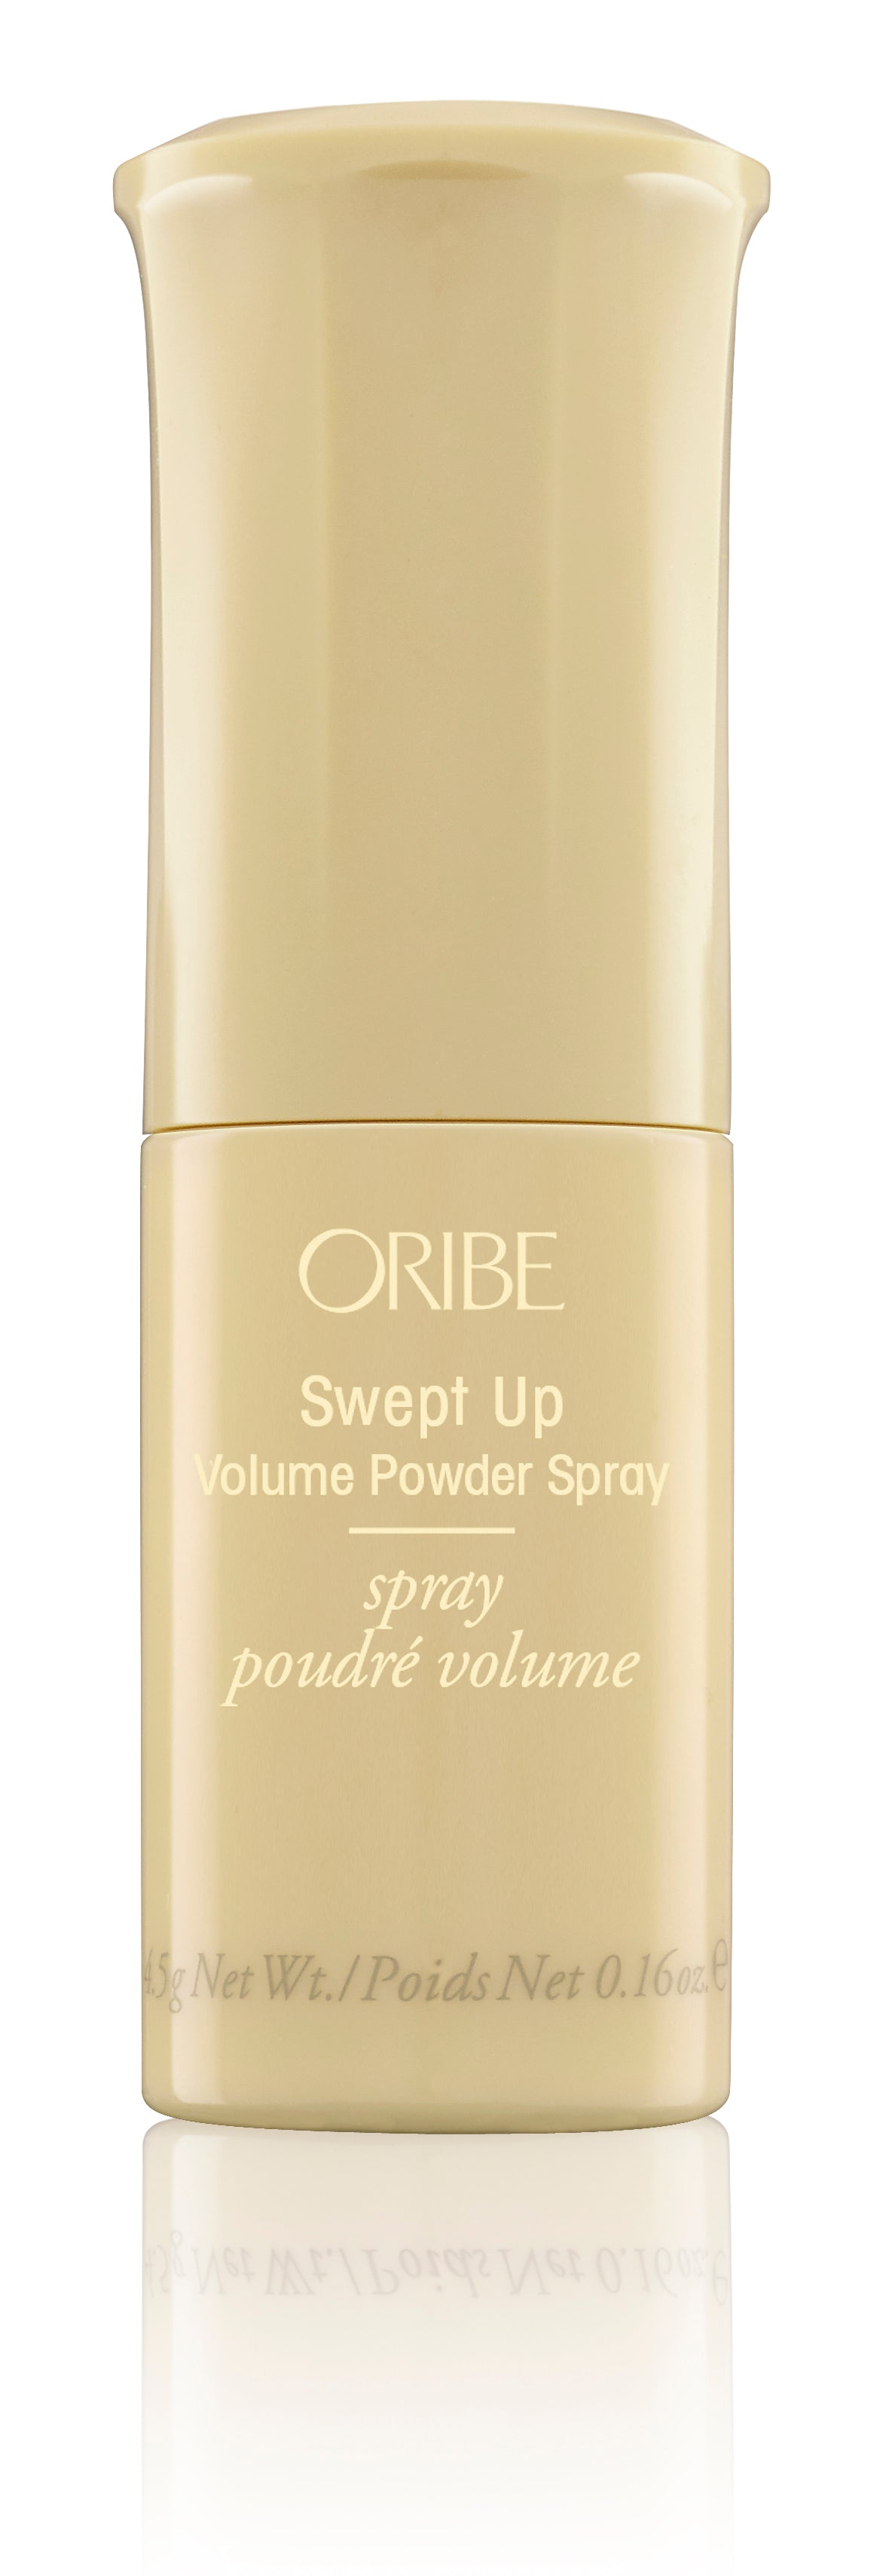 Swept Up Volume Powder Spray